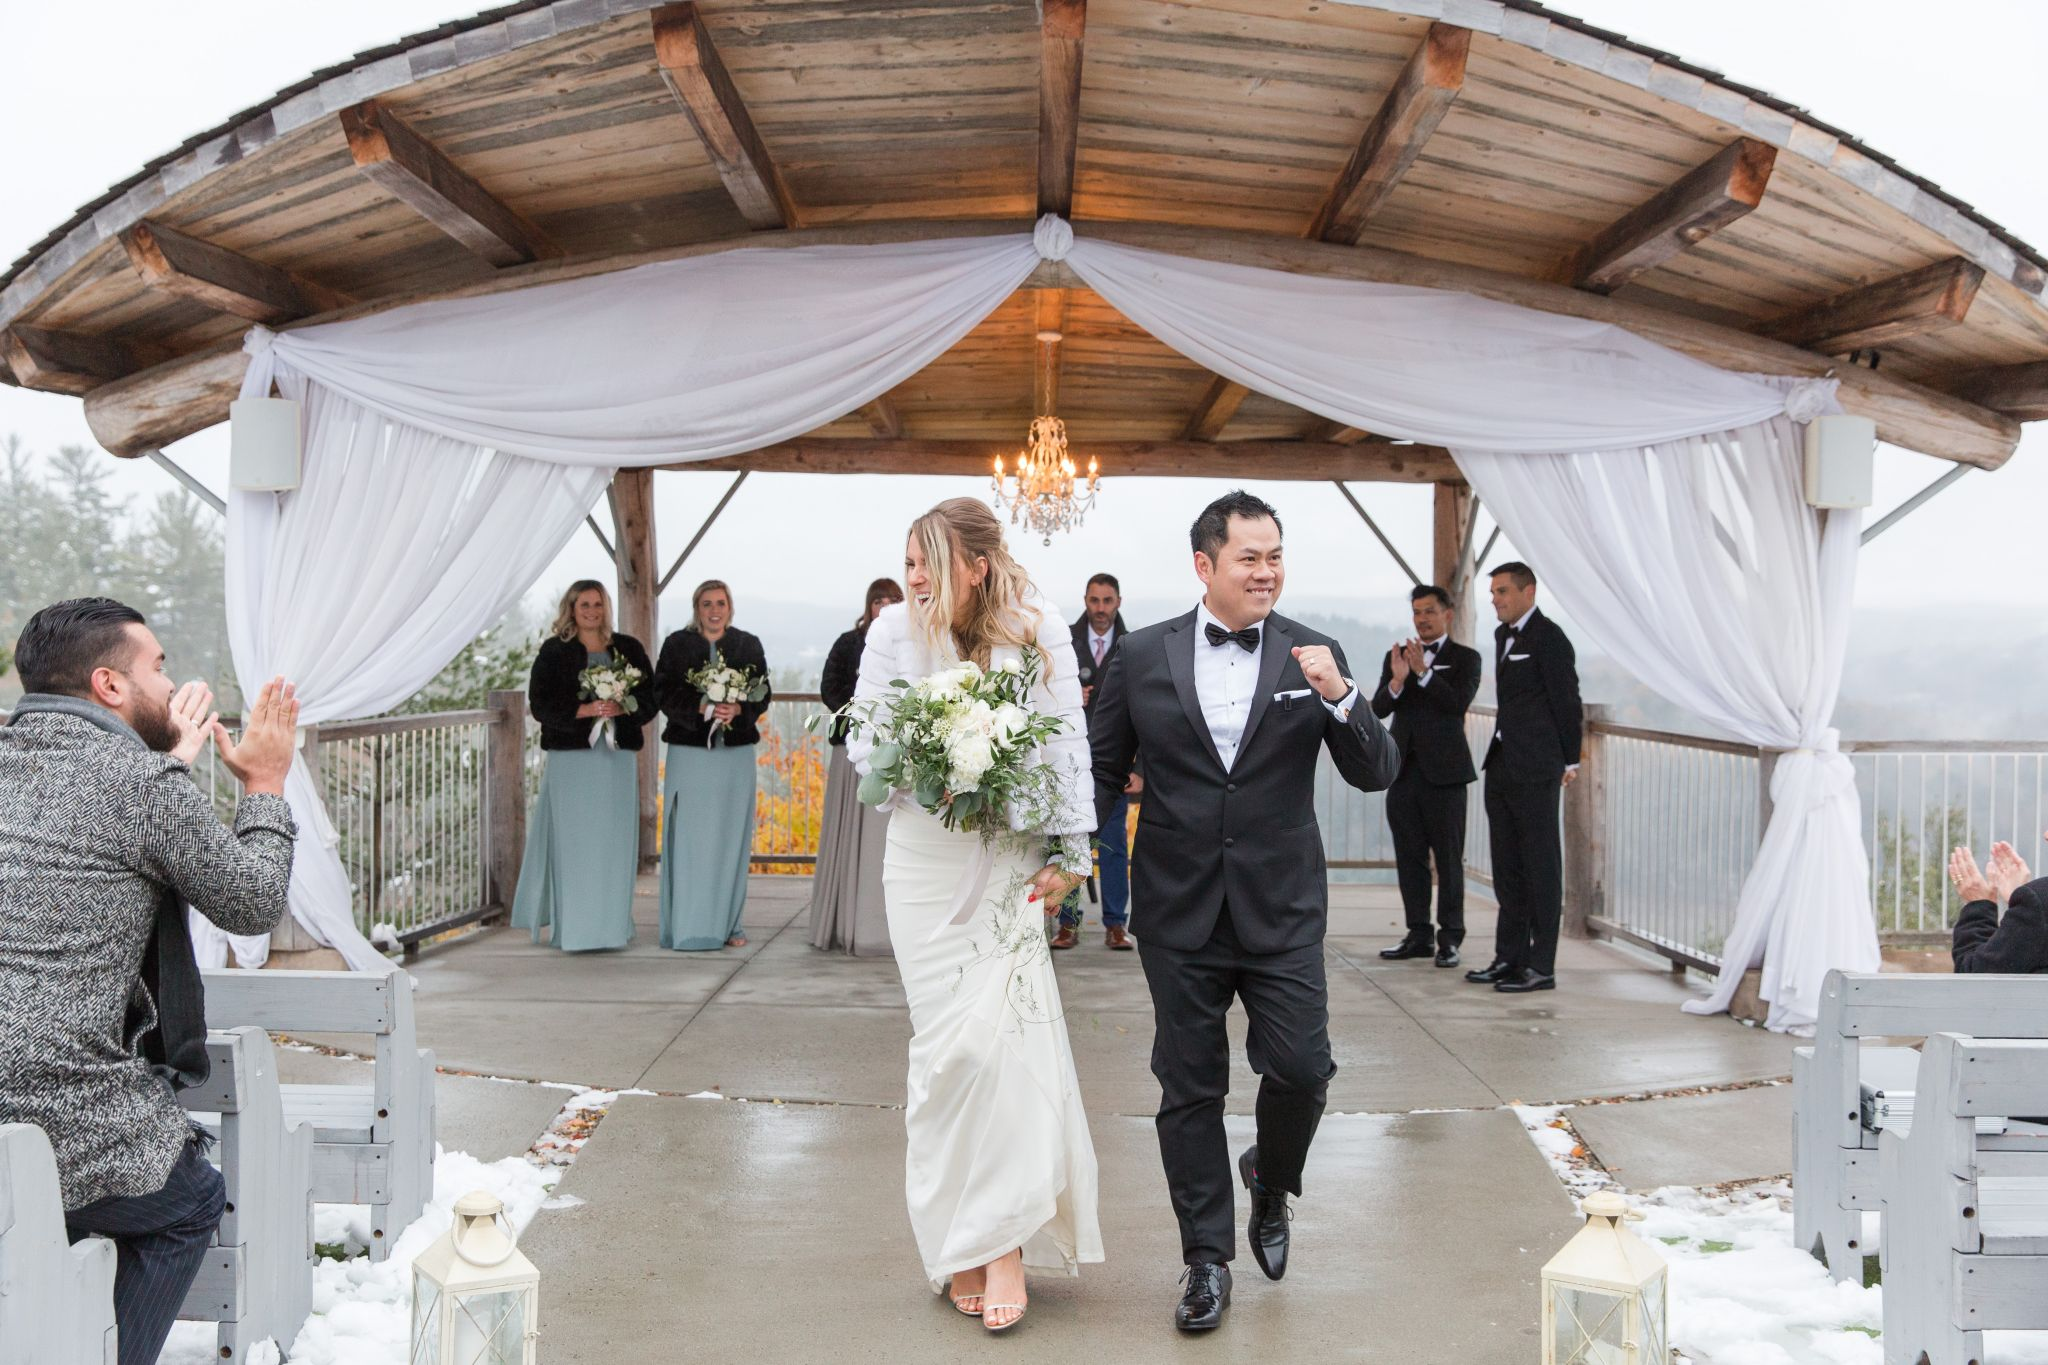 life with aco wedding, two people just married